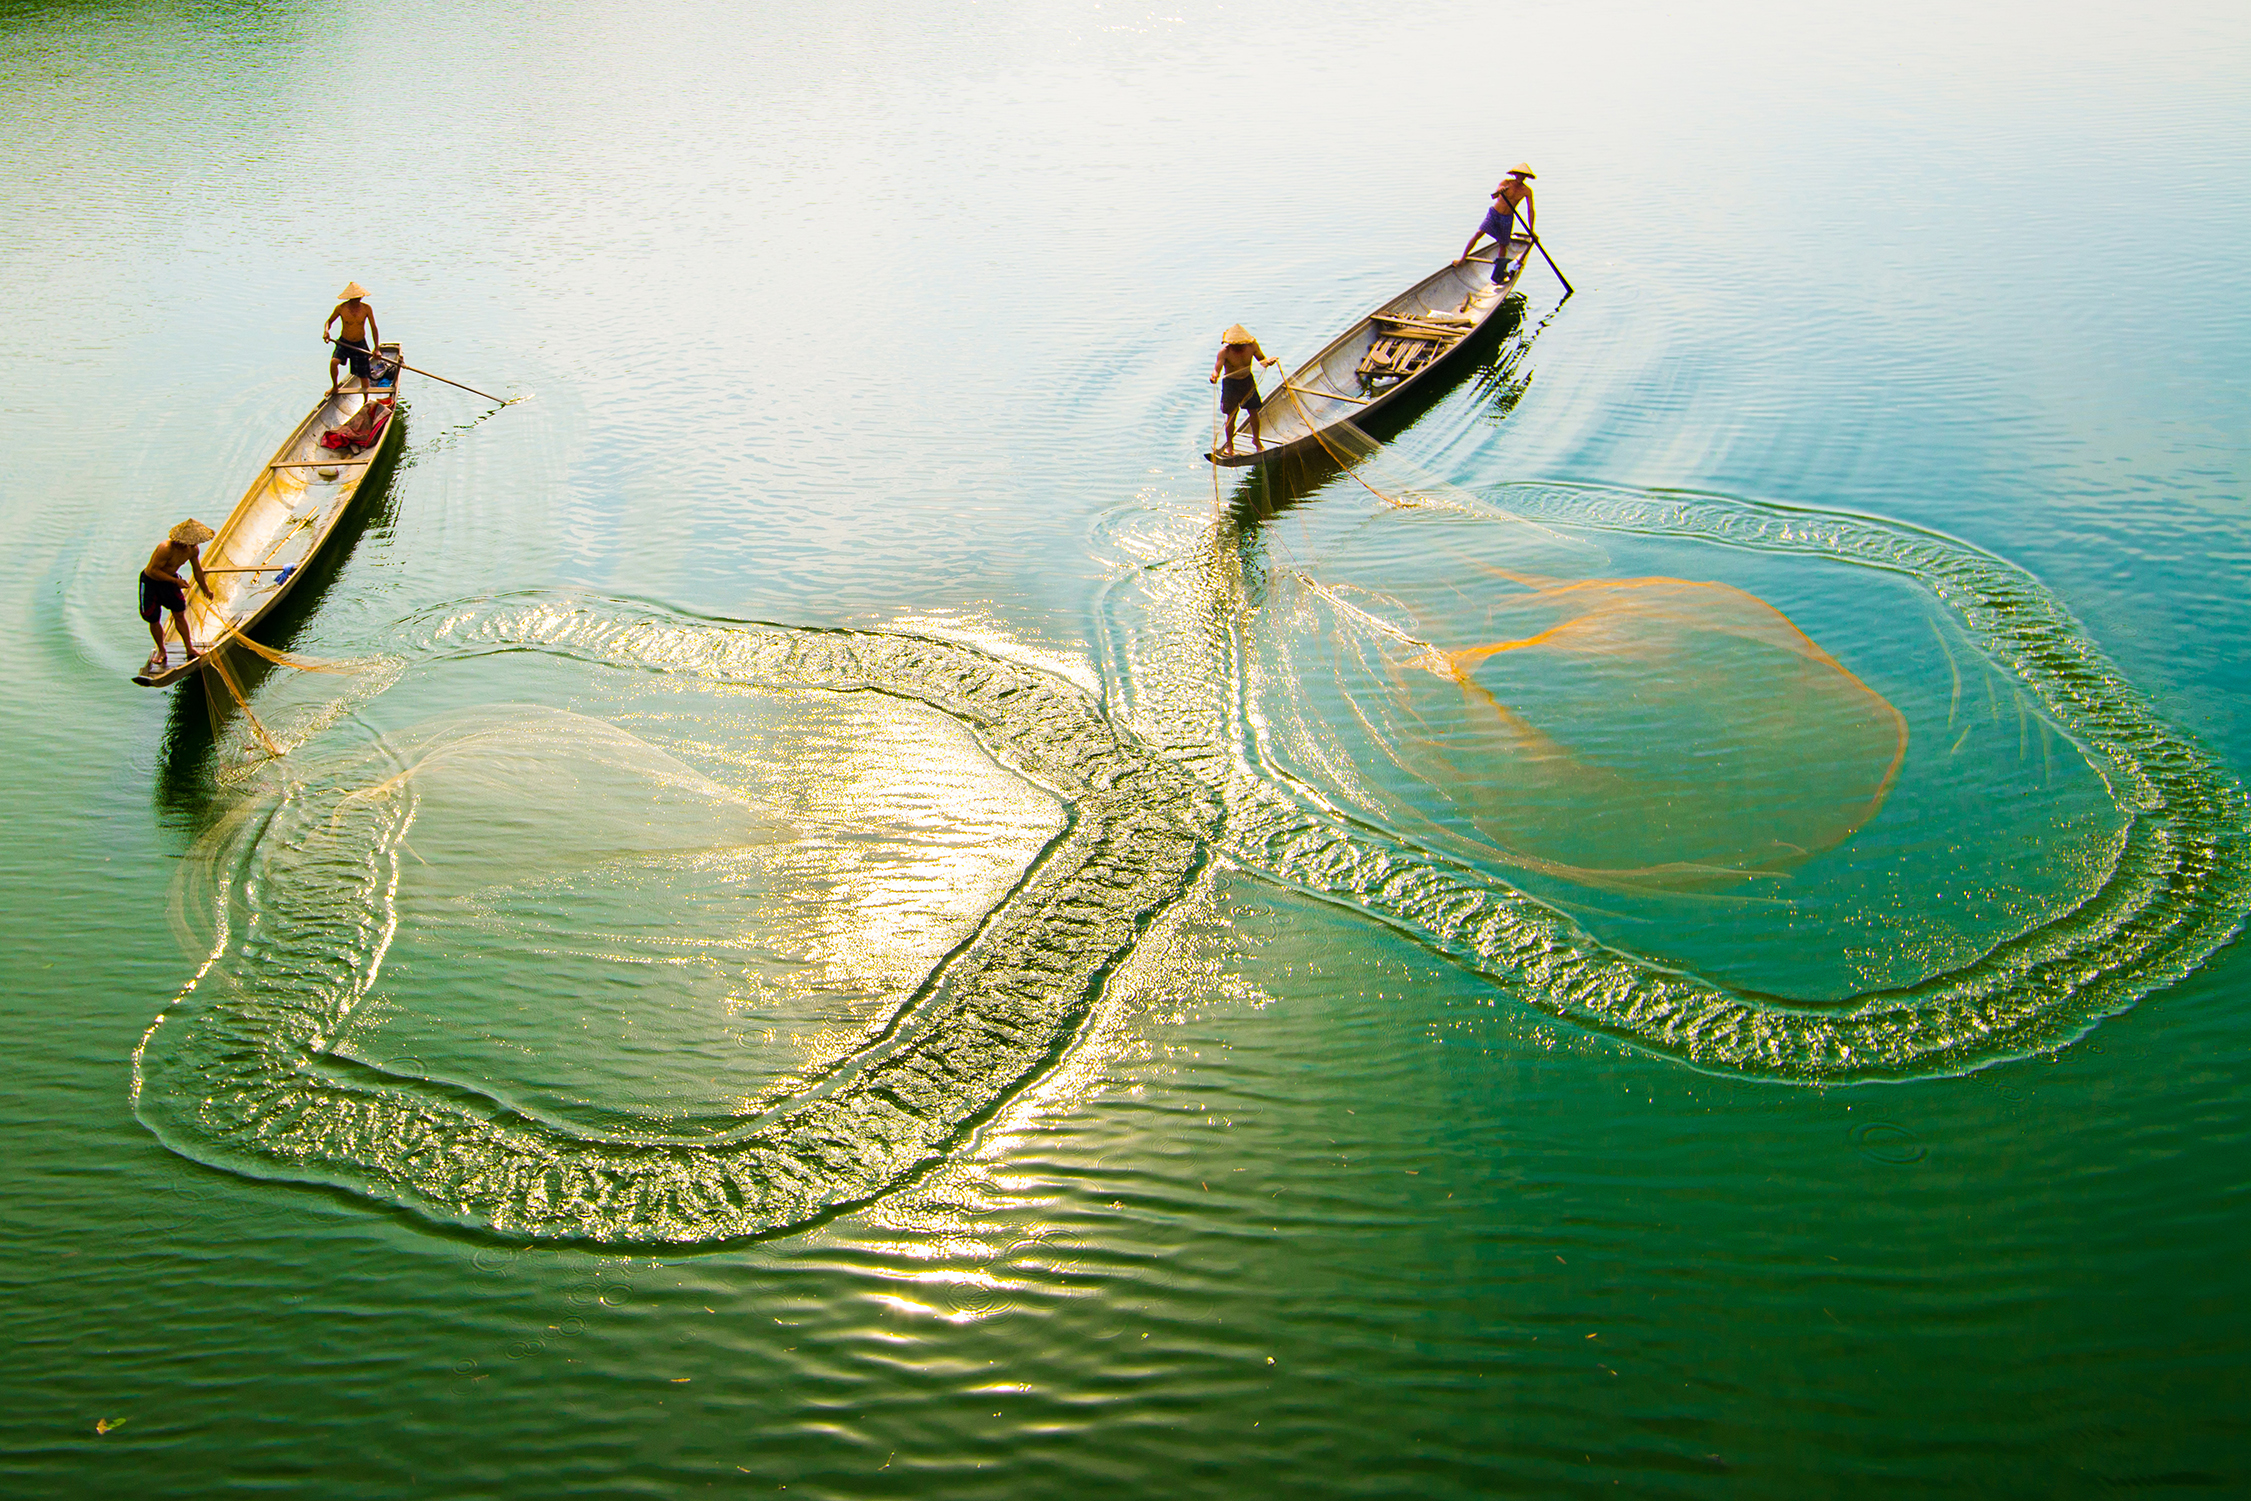 Local people casting fishing nets from their canoes